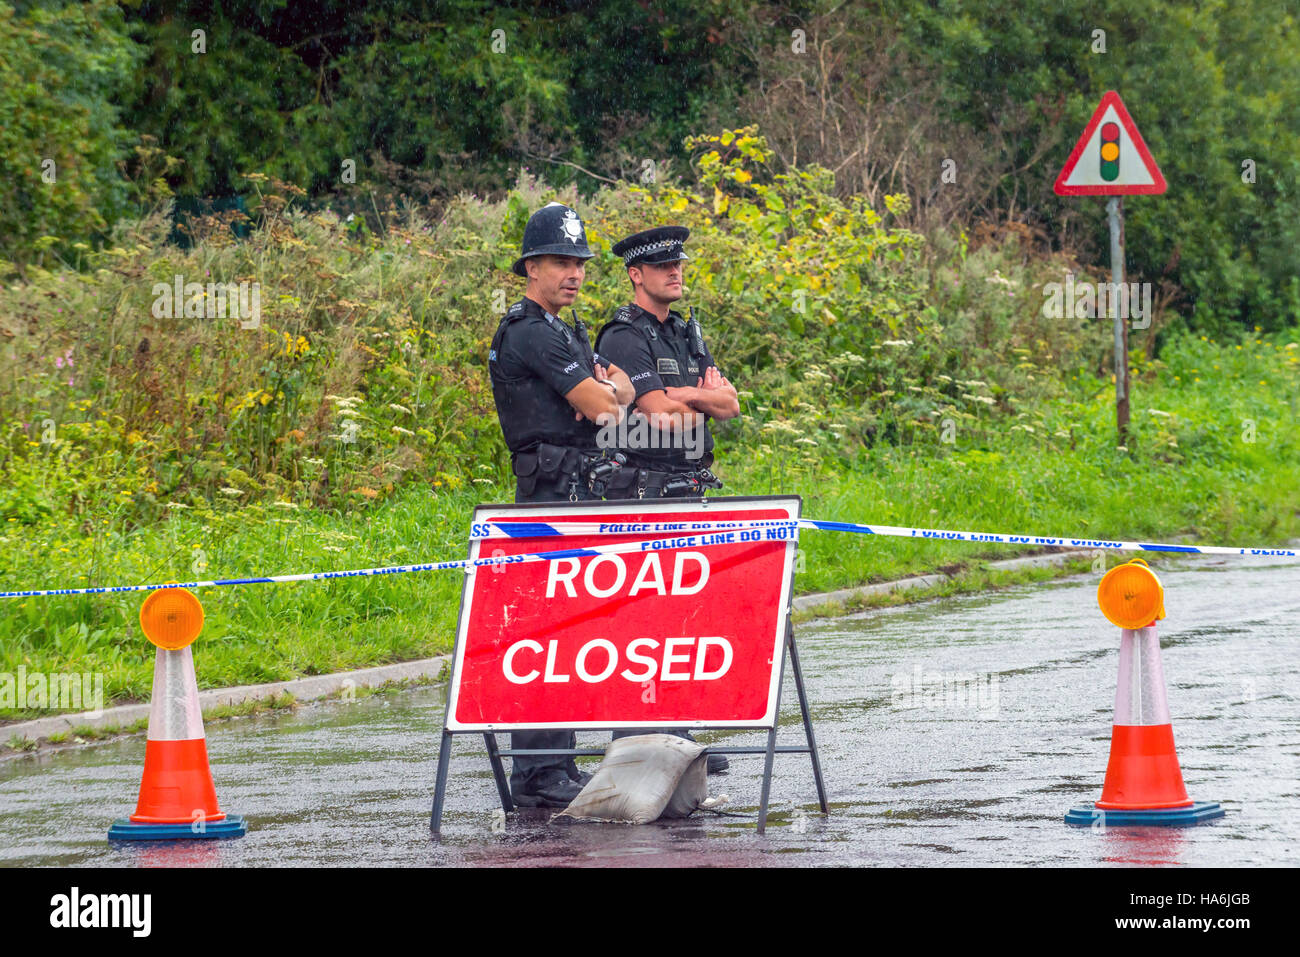 Police guard access to the A27 after the Shoreham air disaster - Stock Image